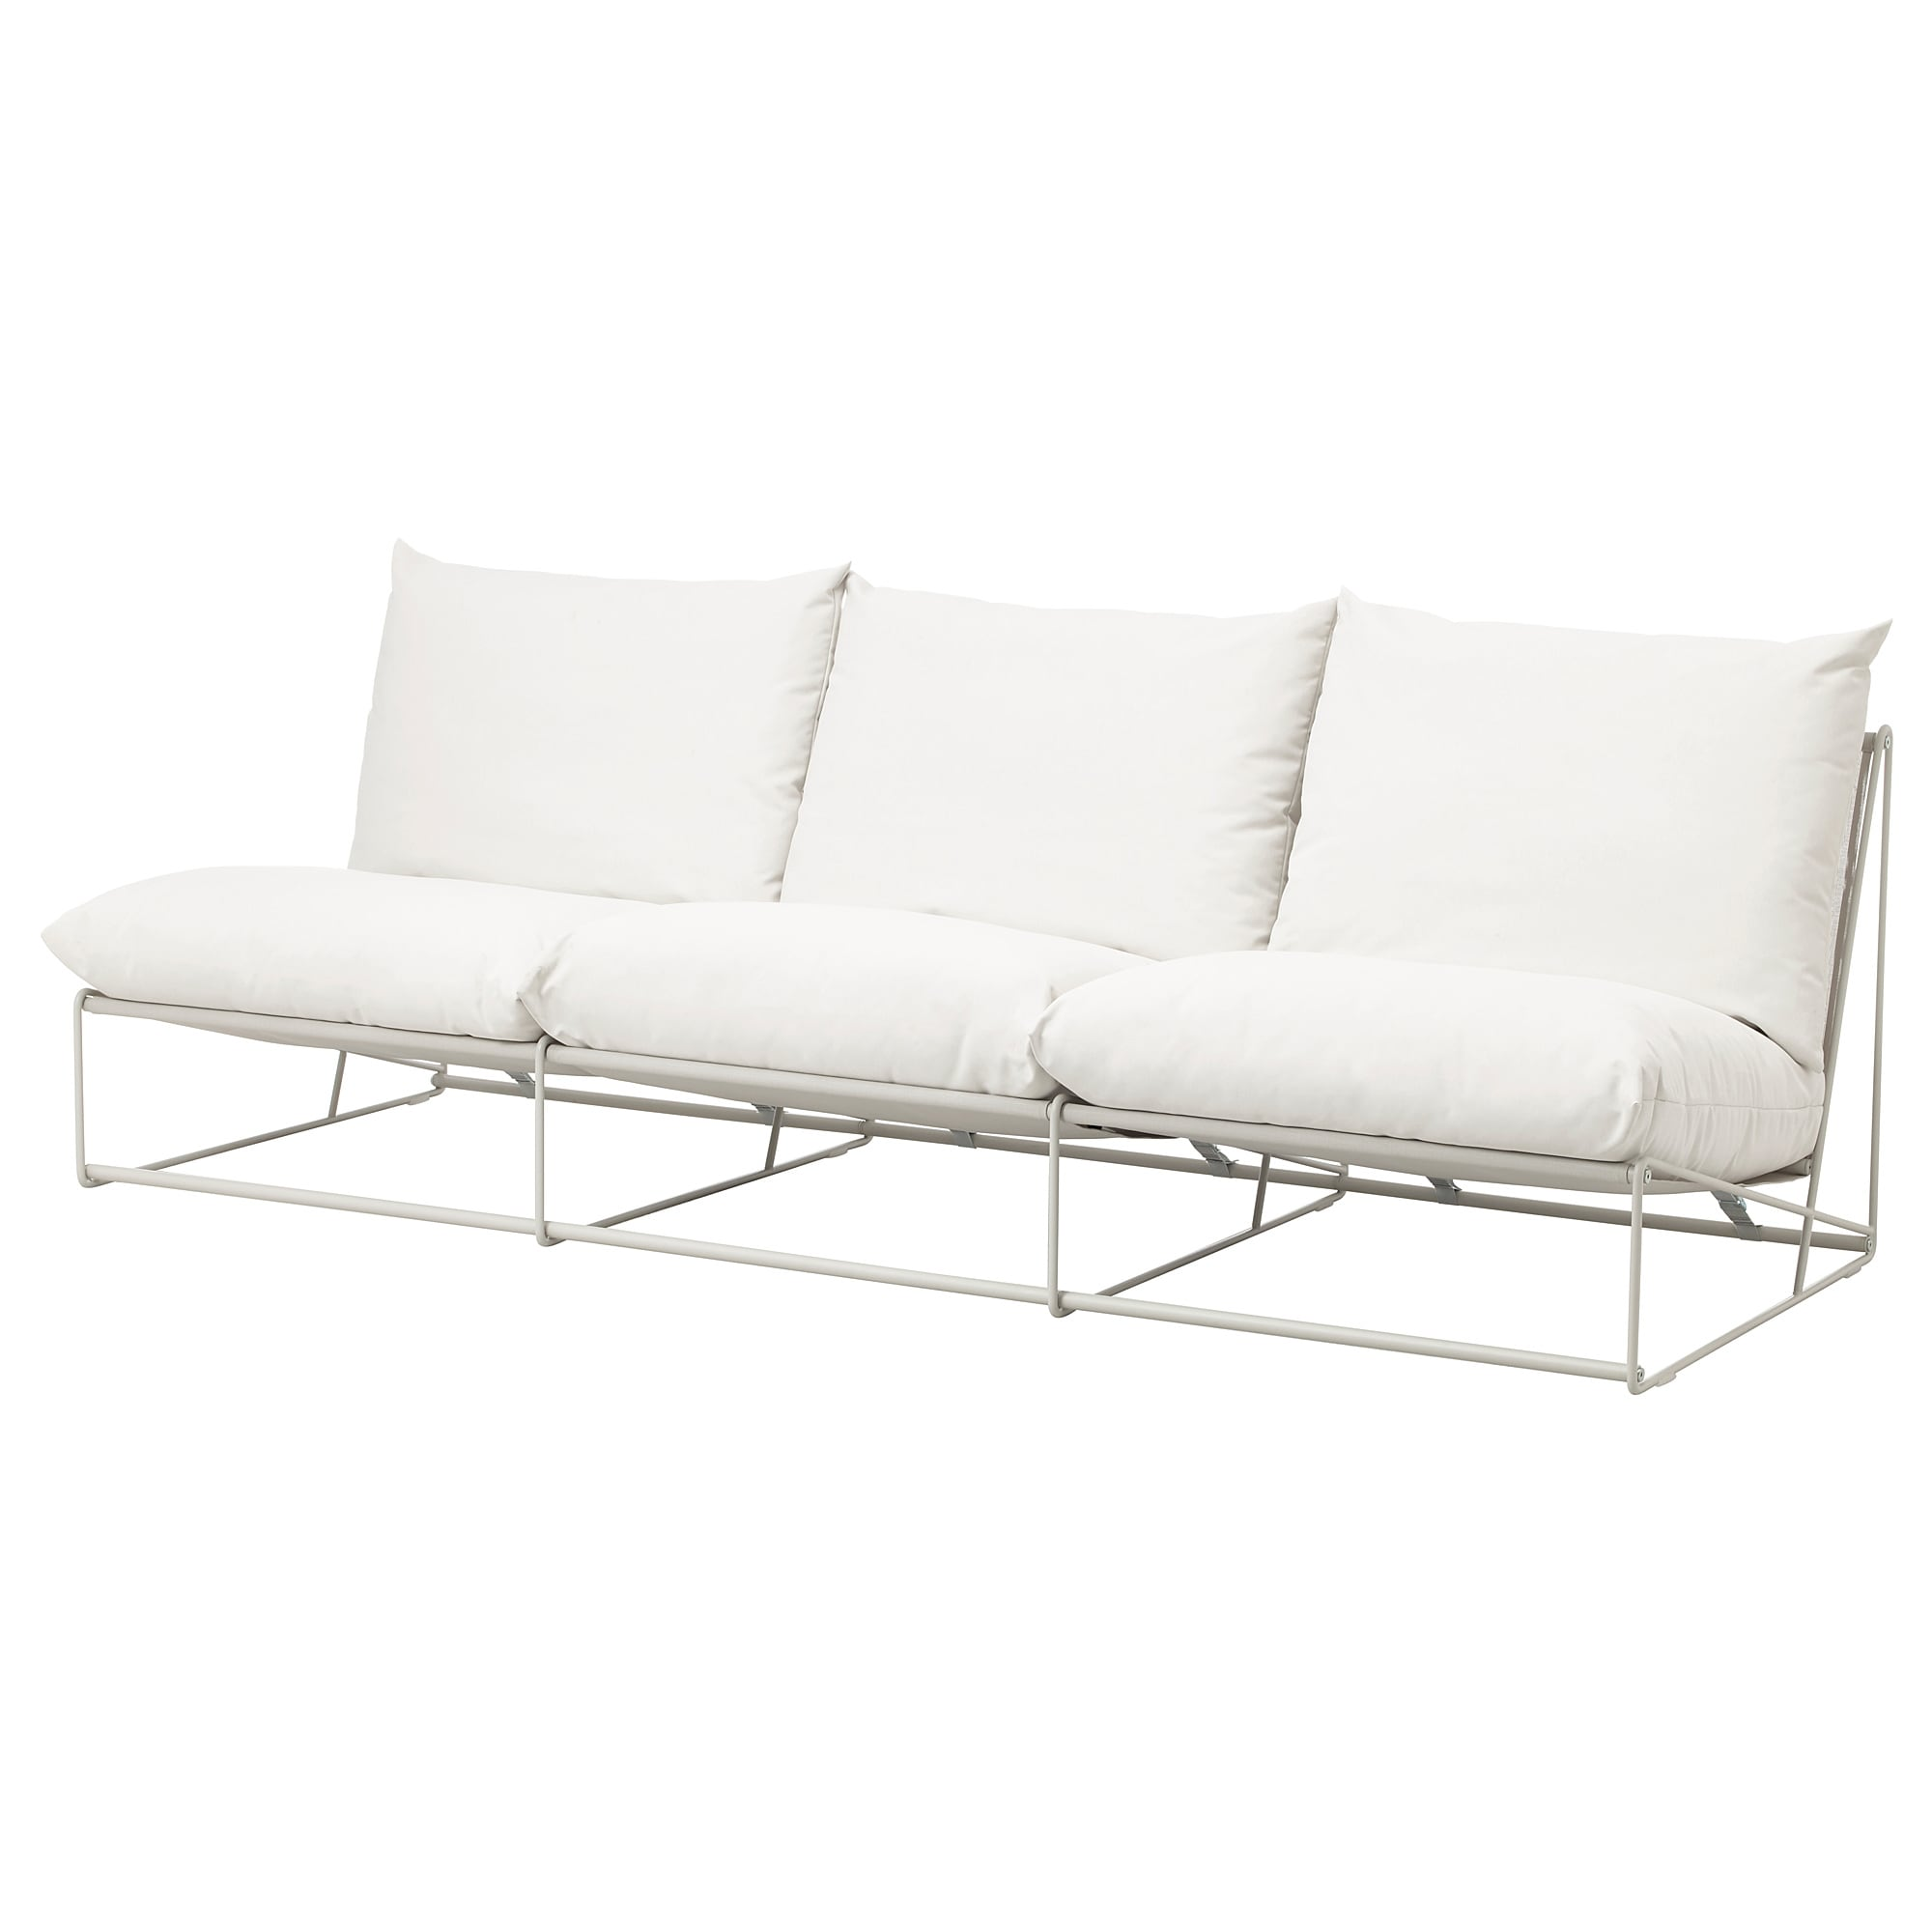 Ikea Havsten Without Armrests With Open End Beige Sofa In